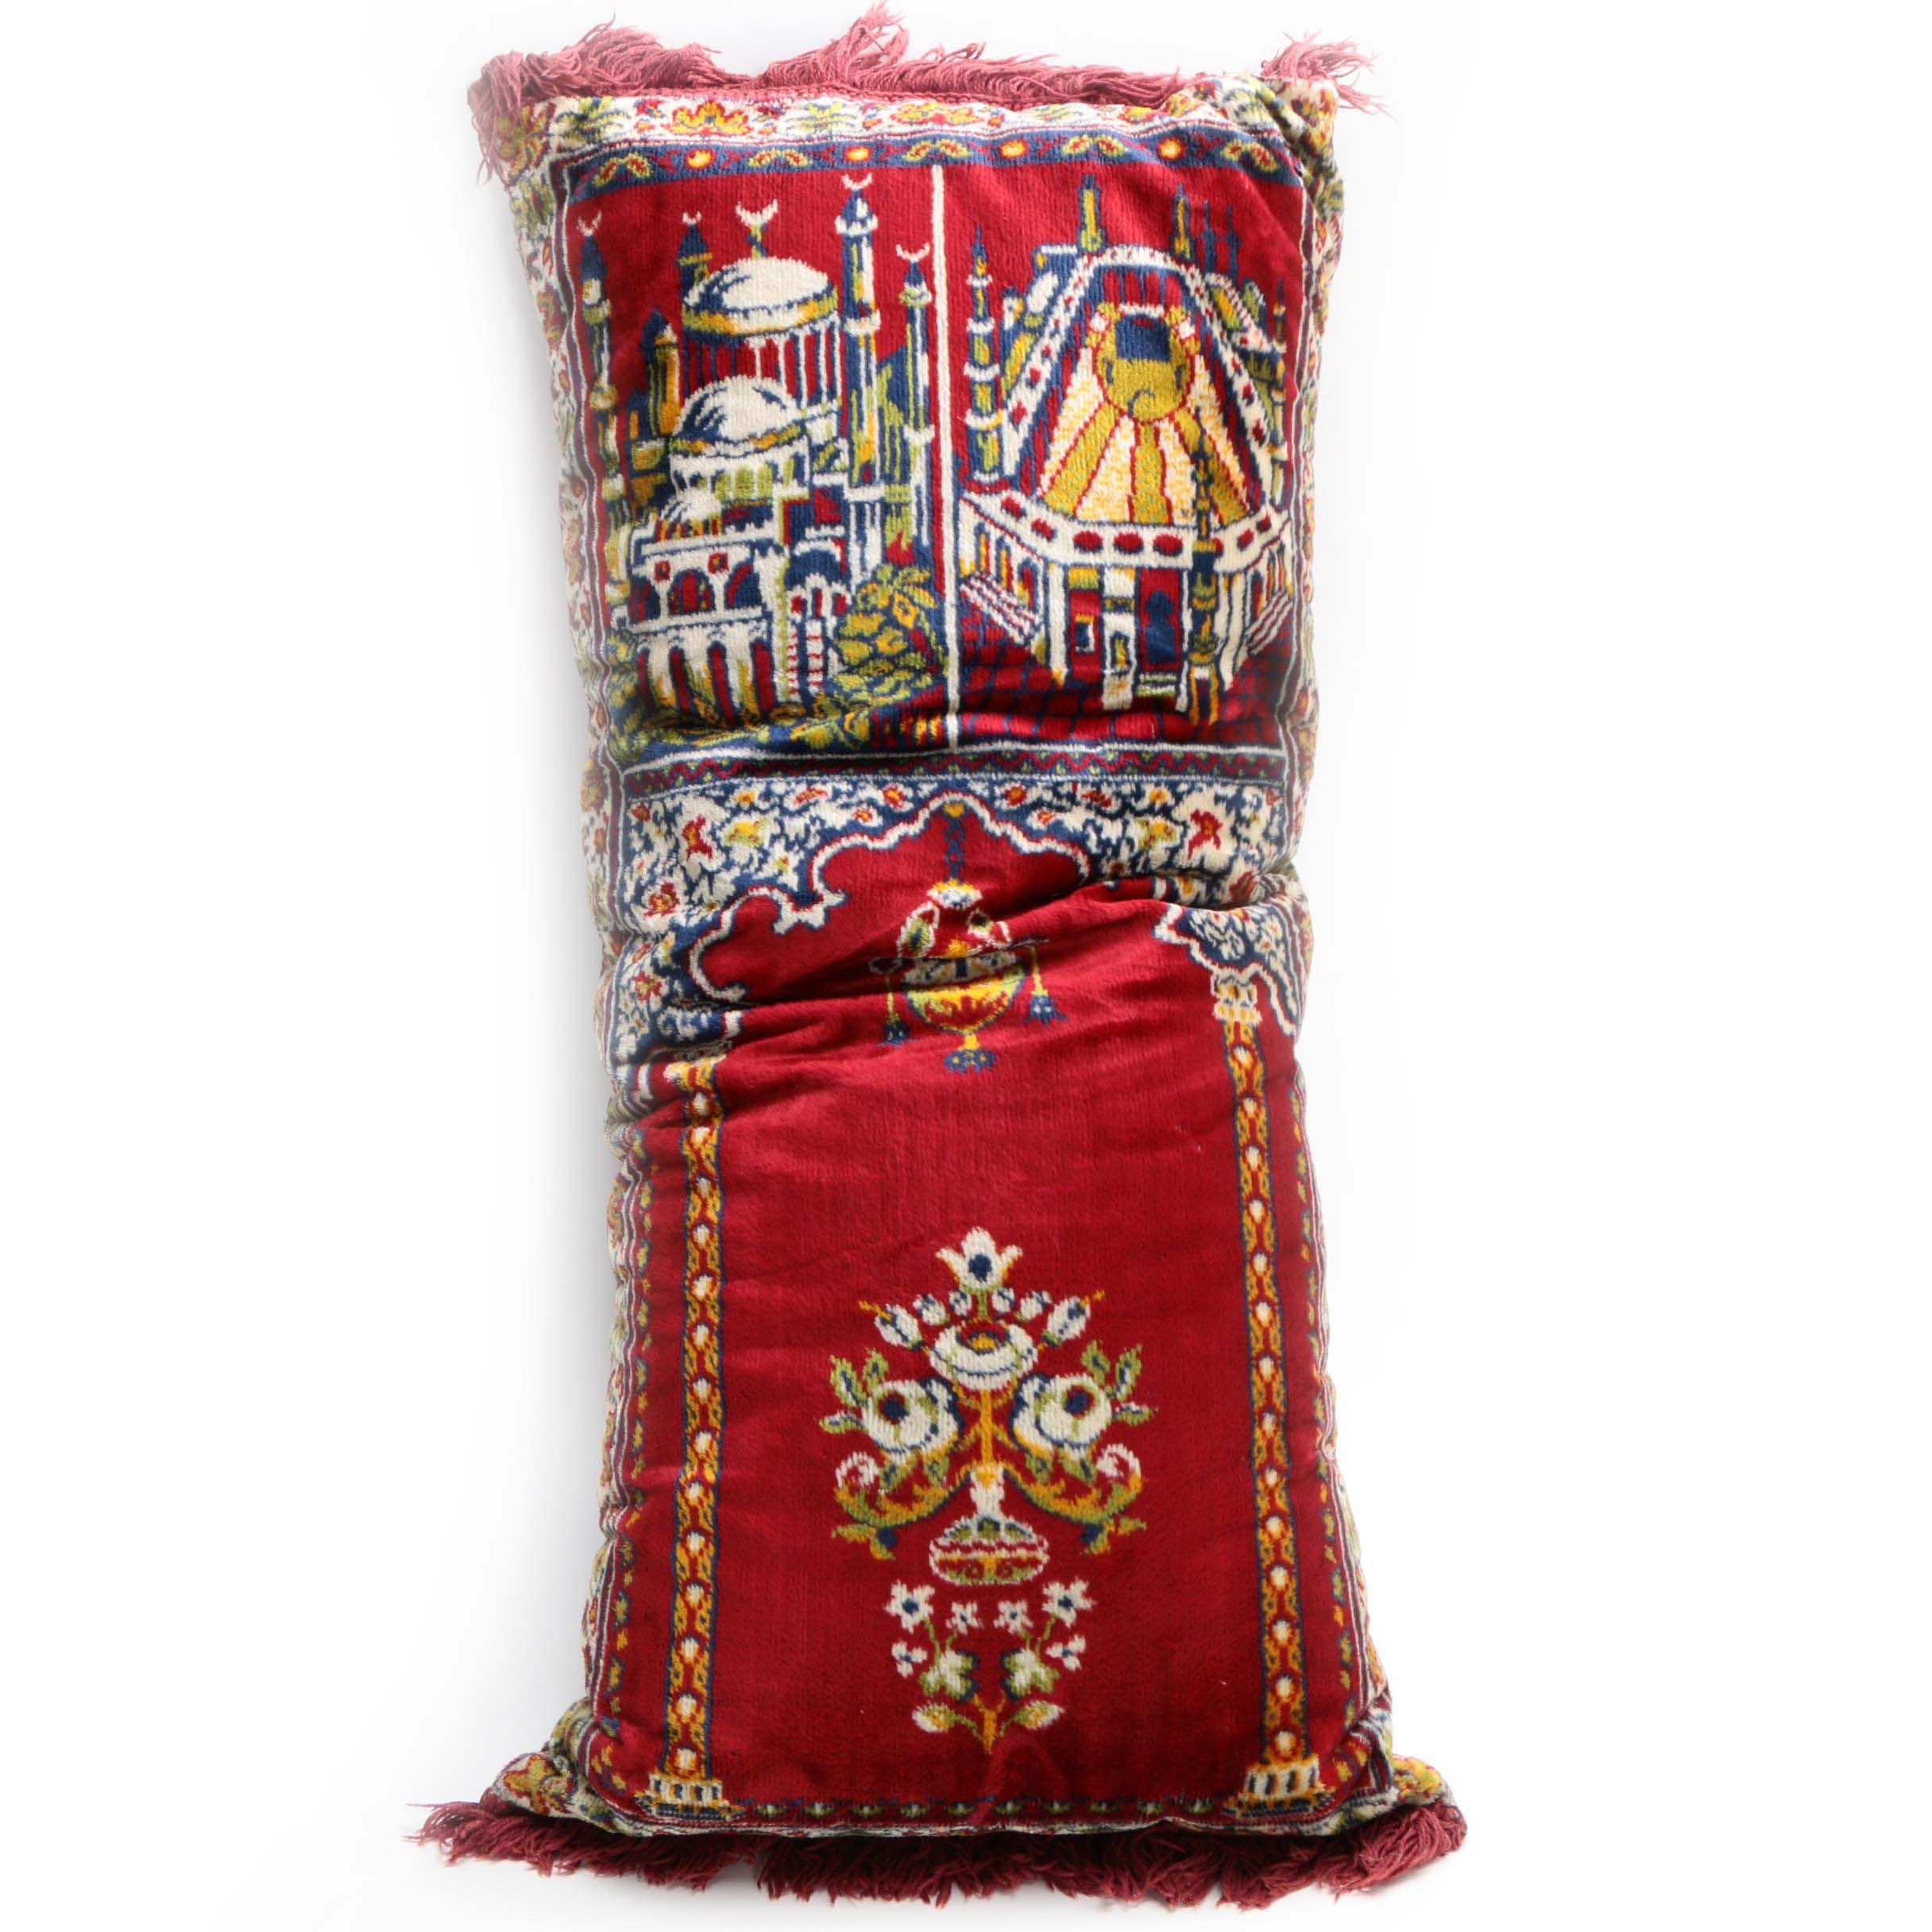 Machine Made Persian-Style Prayer Rug Accent Pillow